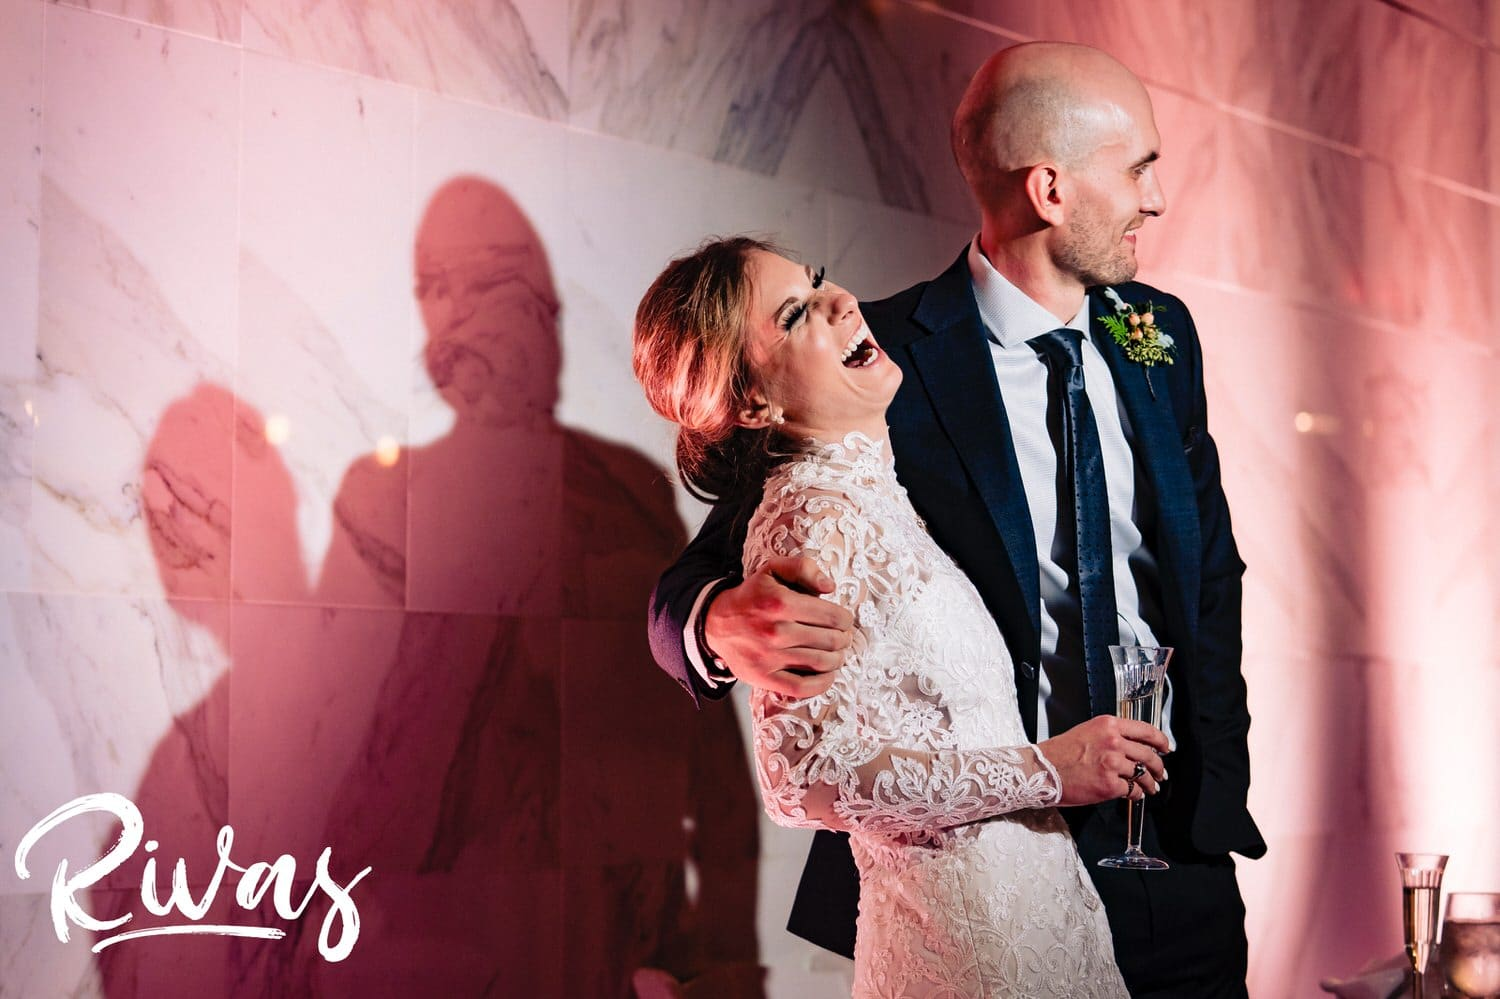 A candid, colorful picture of a bride and groom sharing an embrace and laughing hysterically during the toasts at their winter wedding reception at The Station at 28 Event Space.